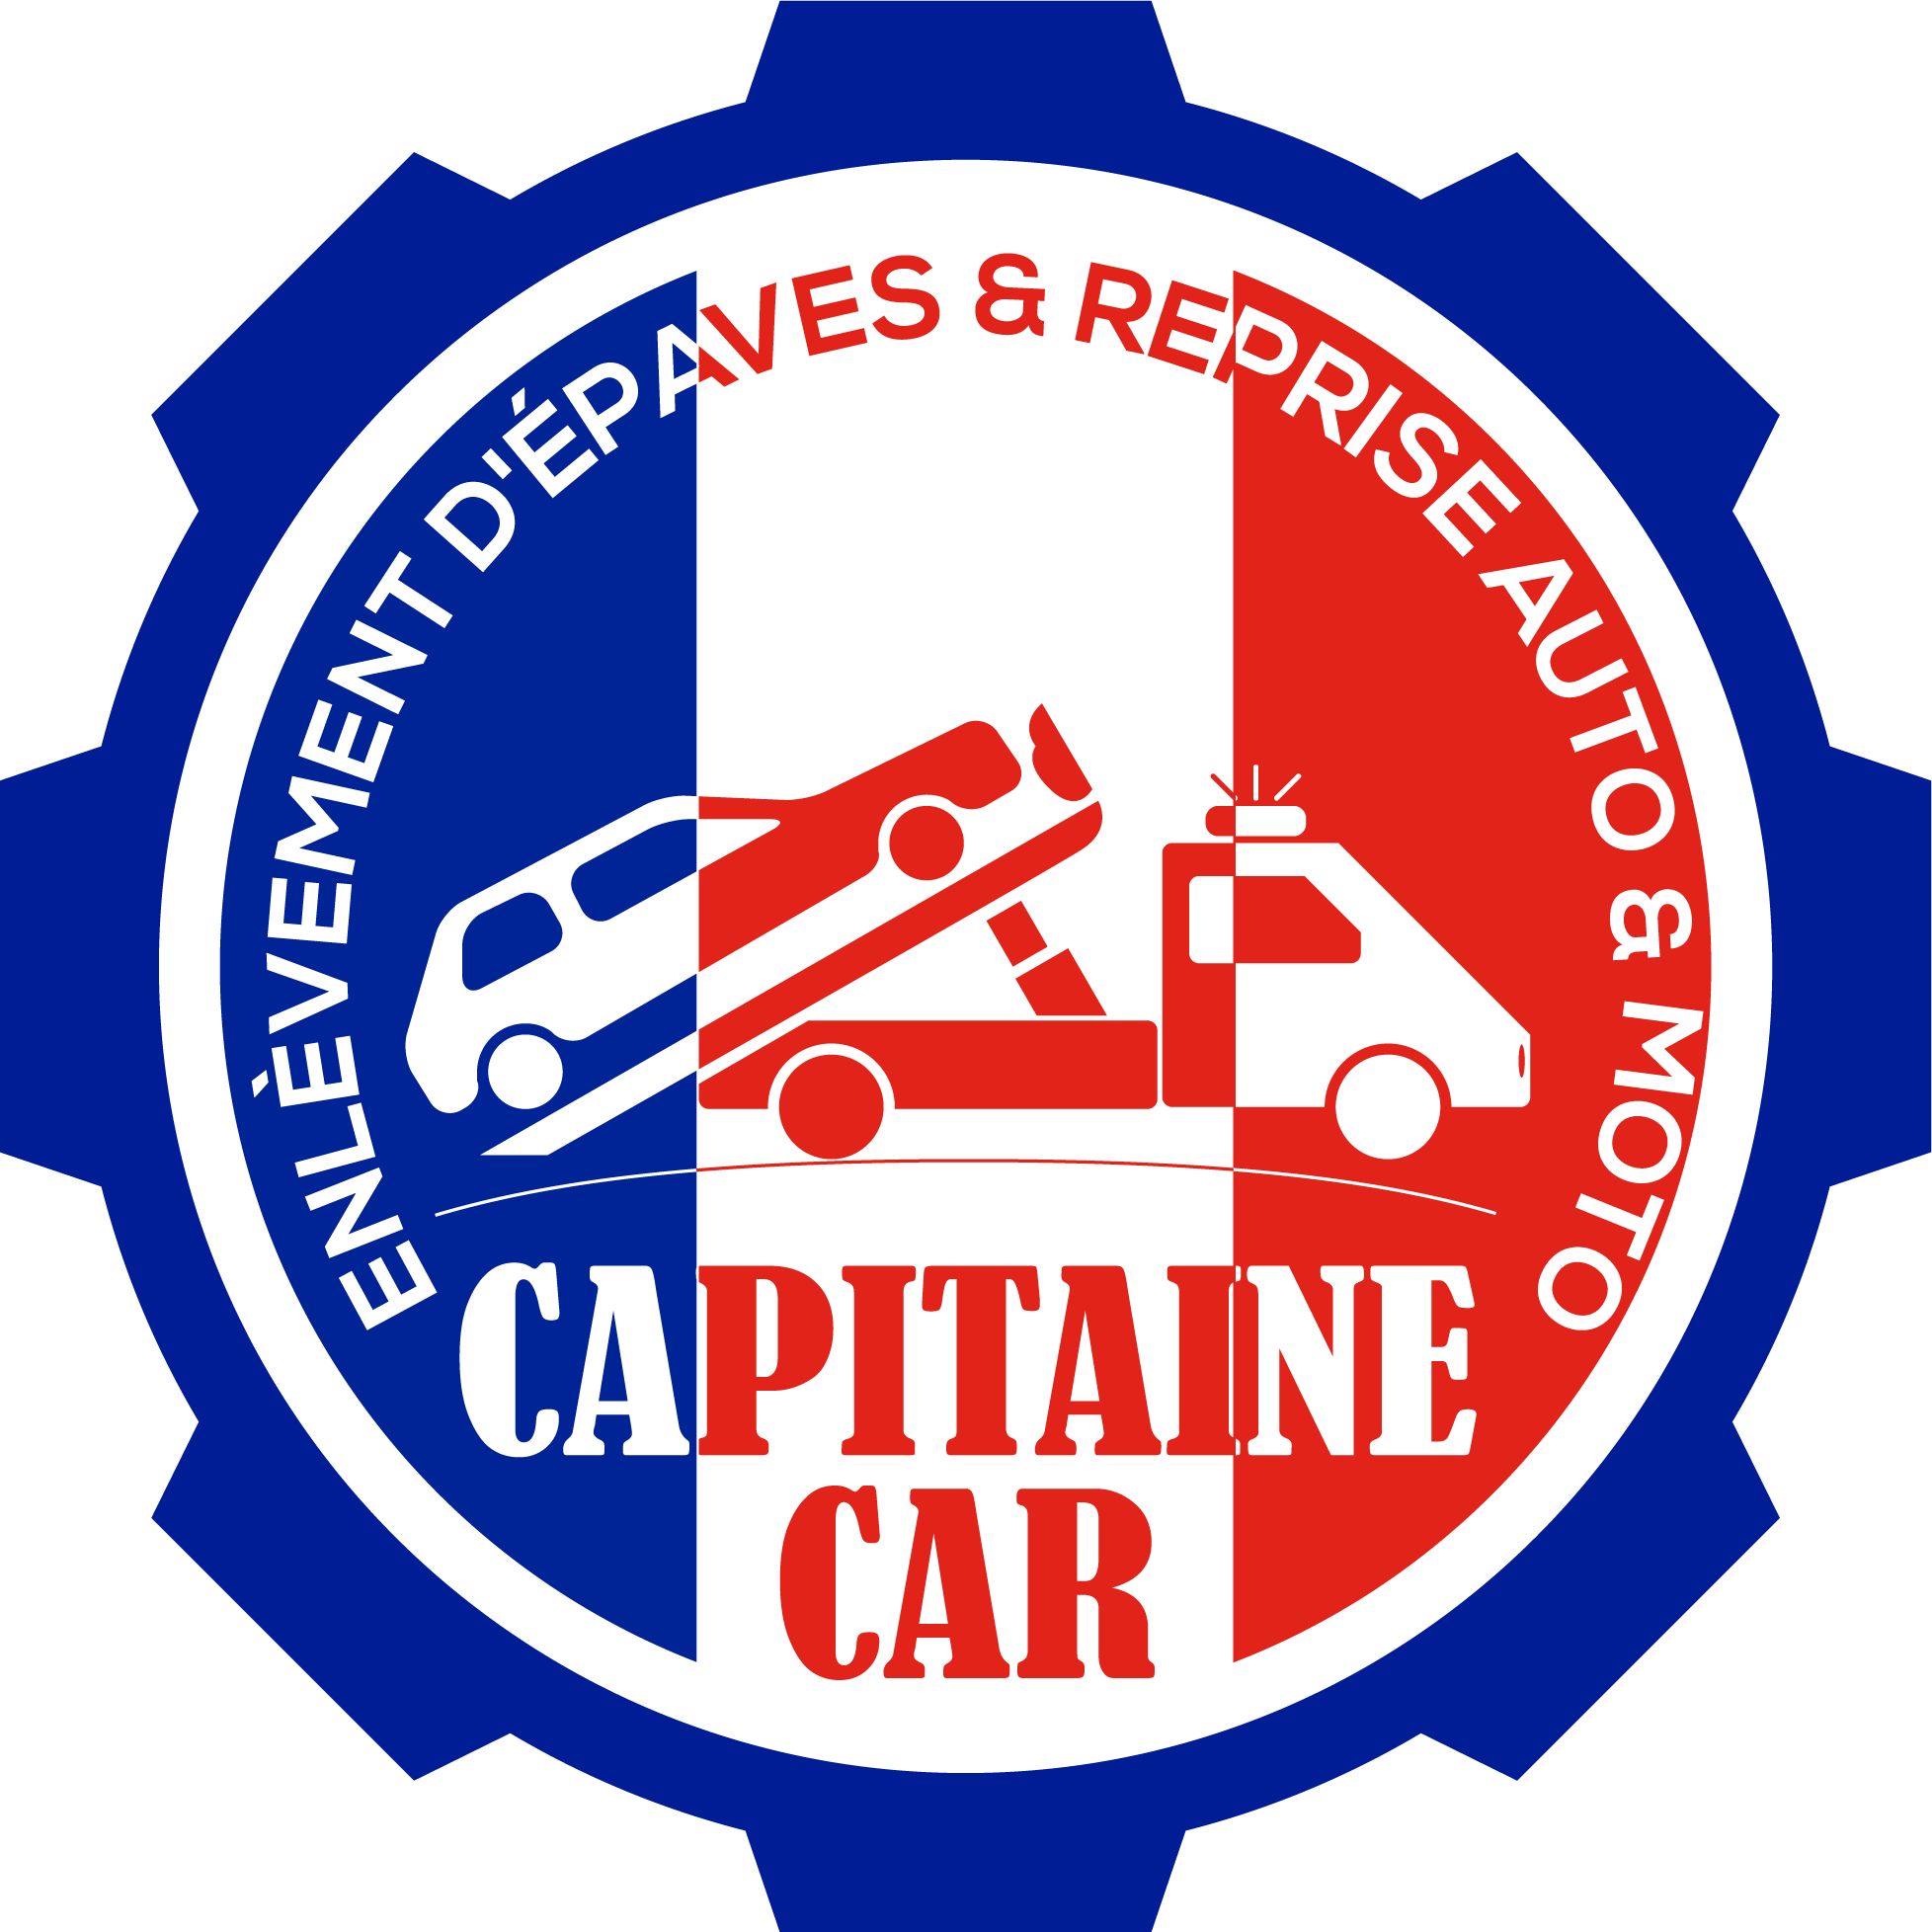 Capitaine Car